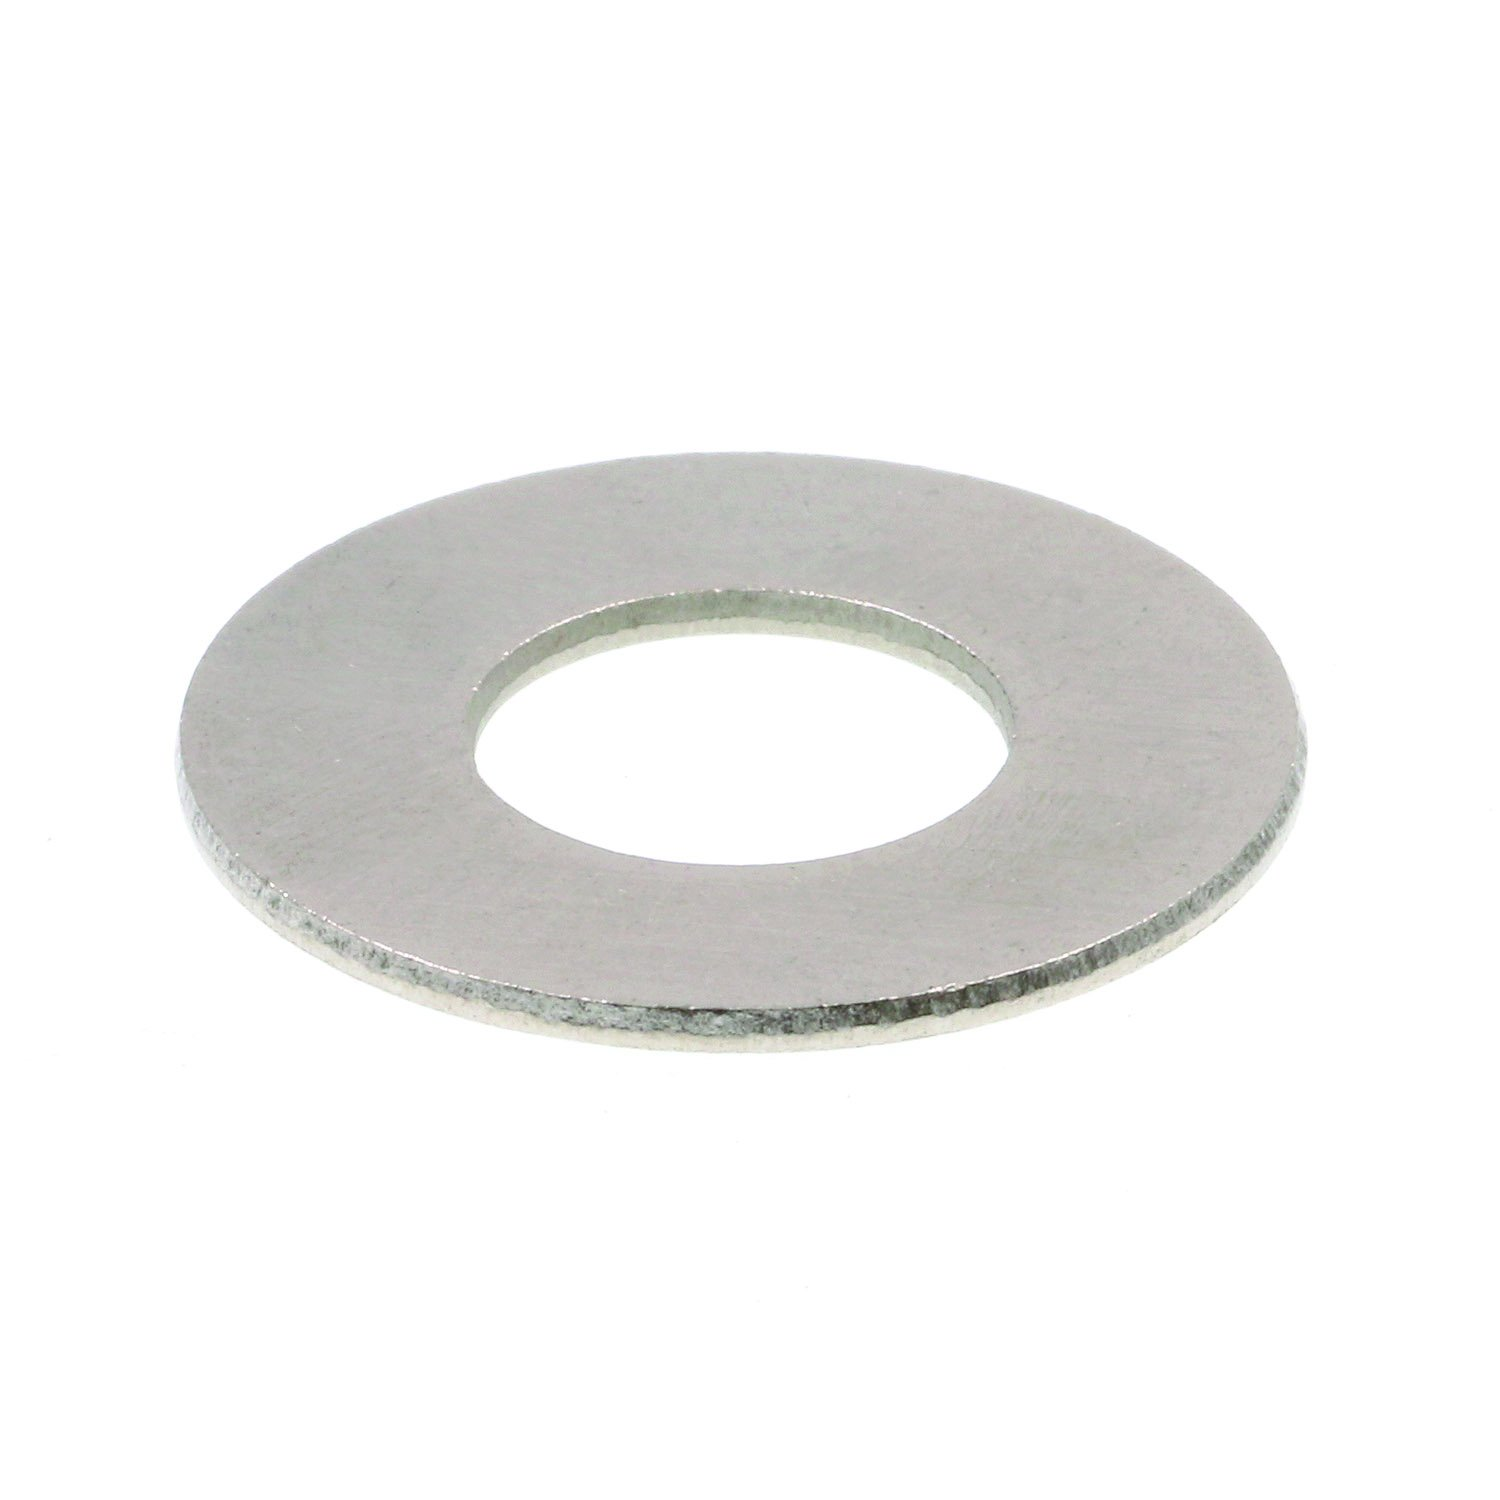 Prime Line 9080044 Flat Washers SAE 3 8 in. X 7 8 in. OD Grade 18 8 Stainless Steel 15 Pack